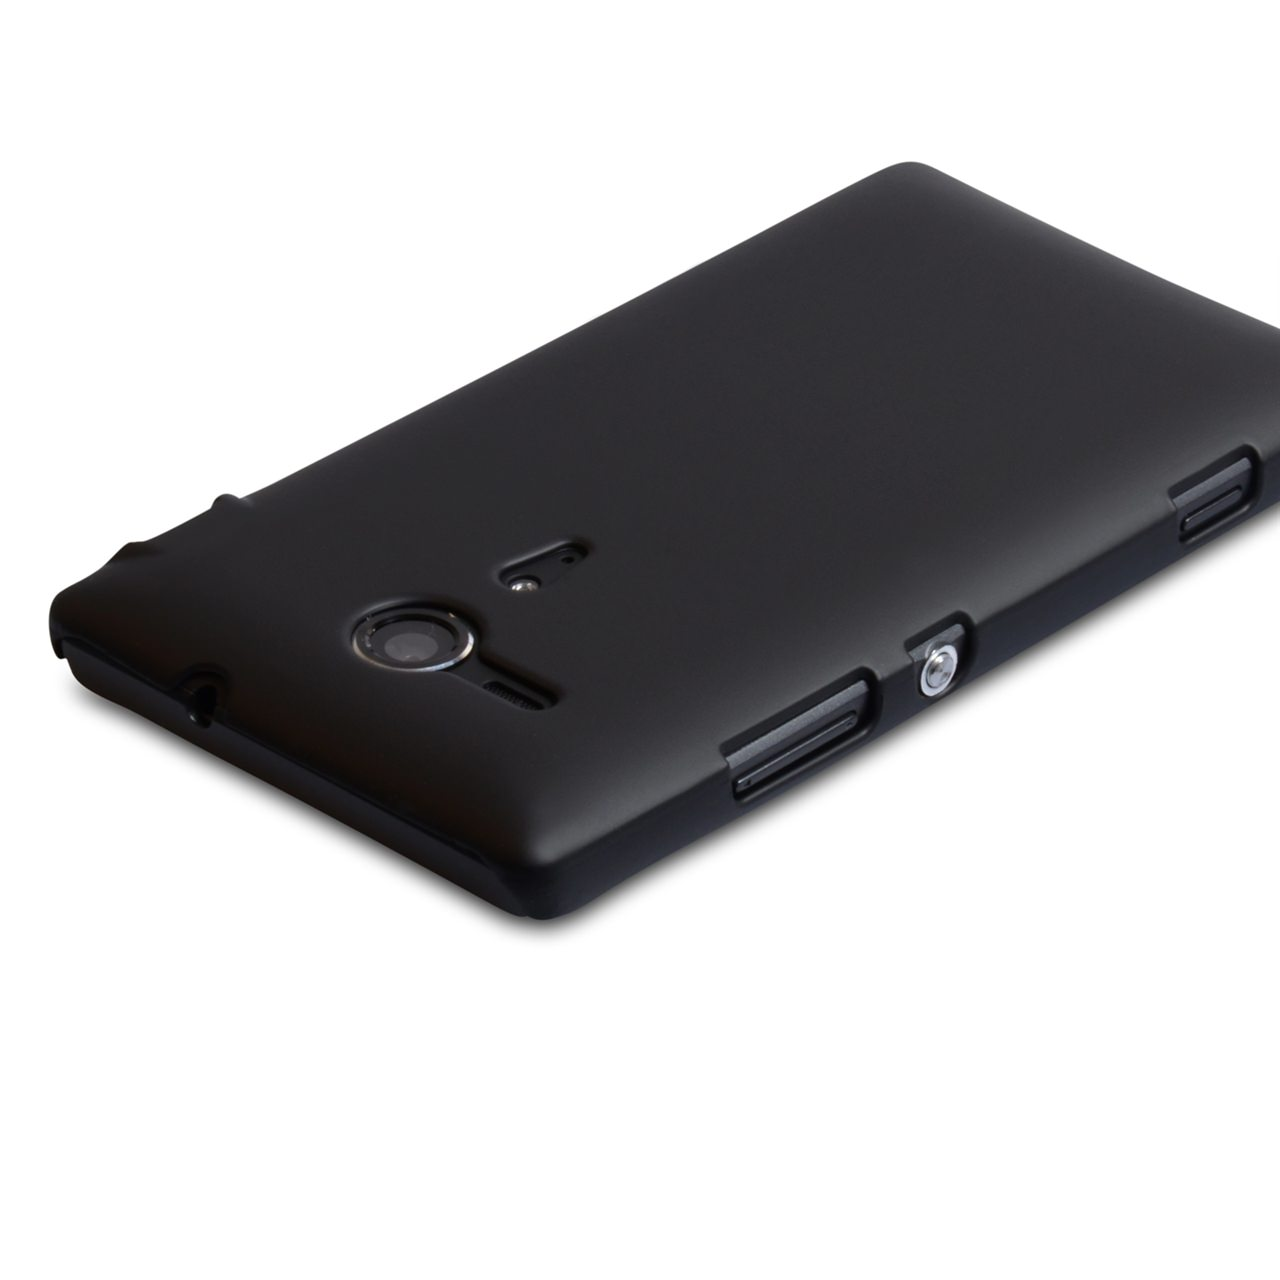 YouSave Accessories Sony Xperia SP Hard Hybrid Case - Black